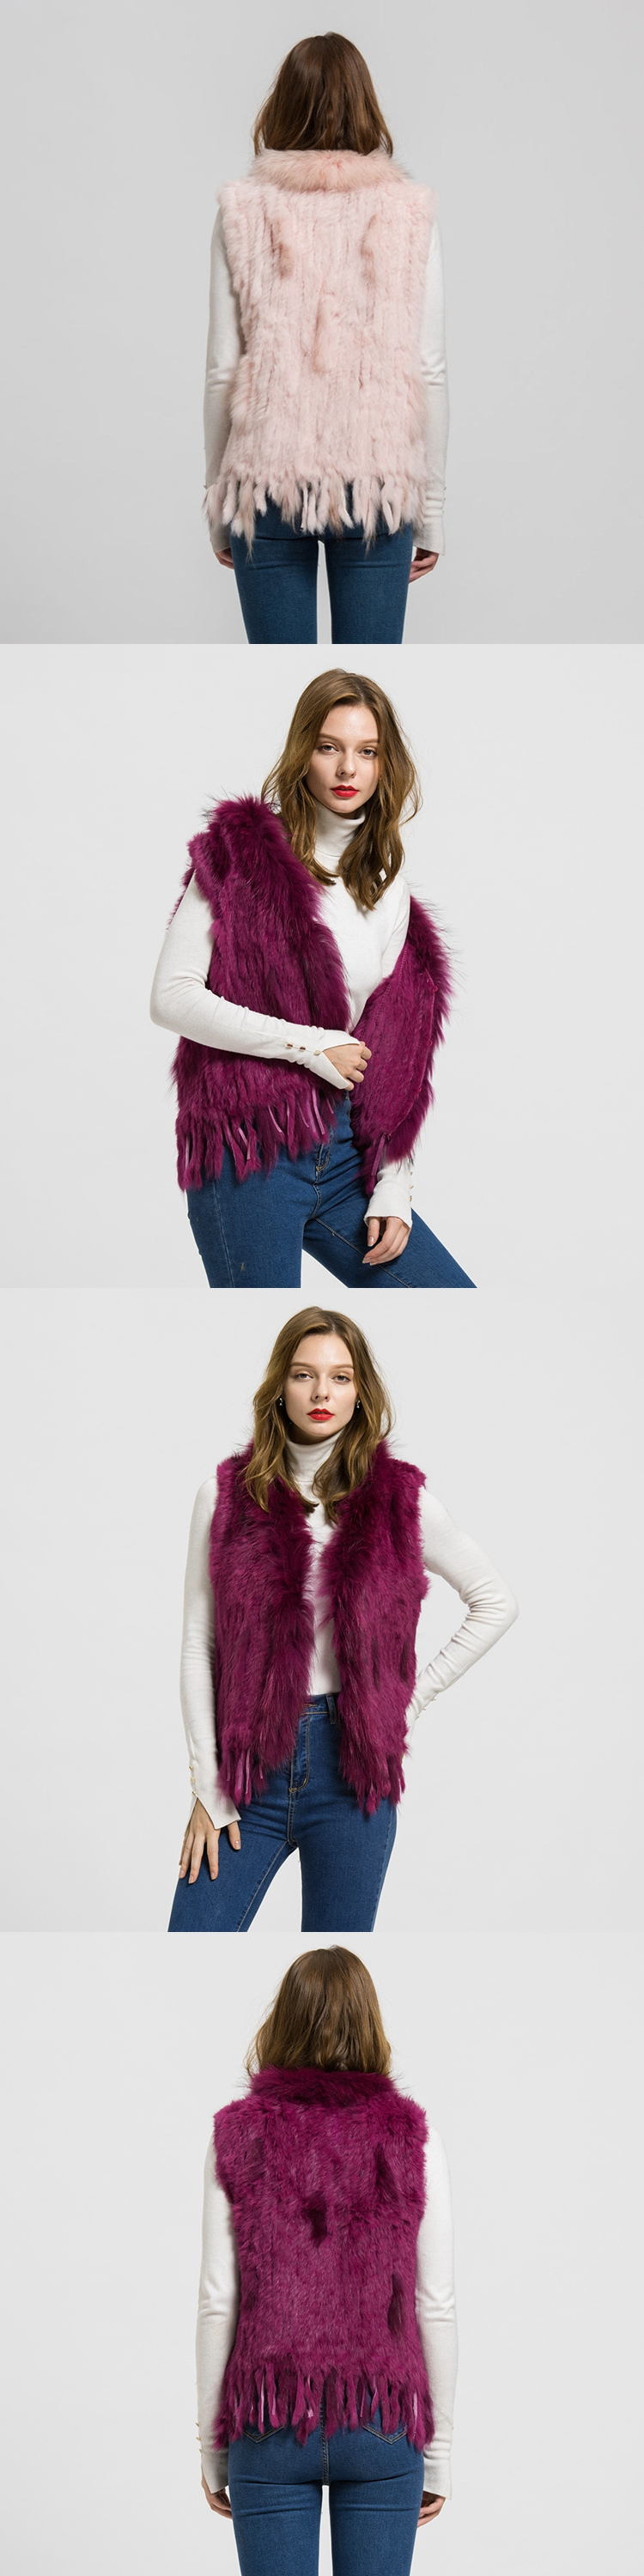 New Rabbit Real Fur Vest Raccoon Fur Collar Women Waistcoat Lady Winter Fashion Gilet Coat